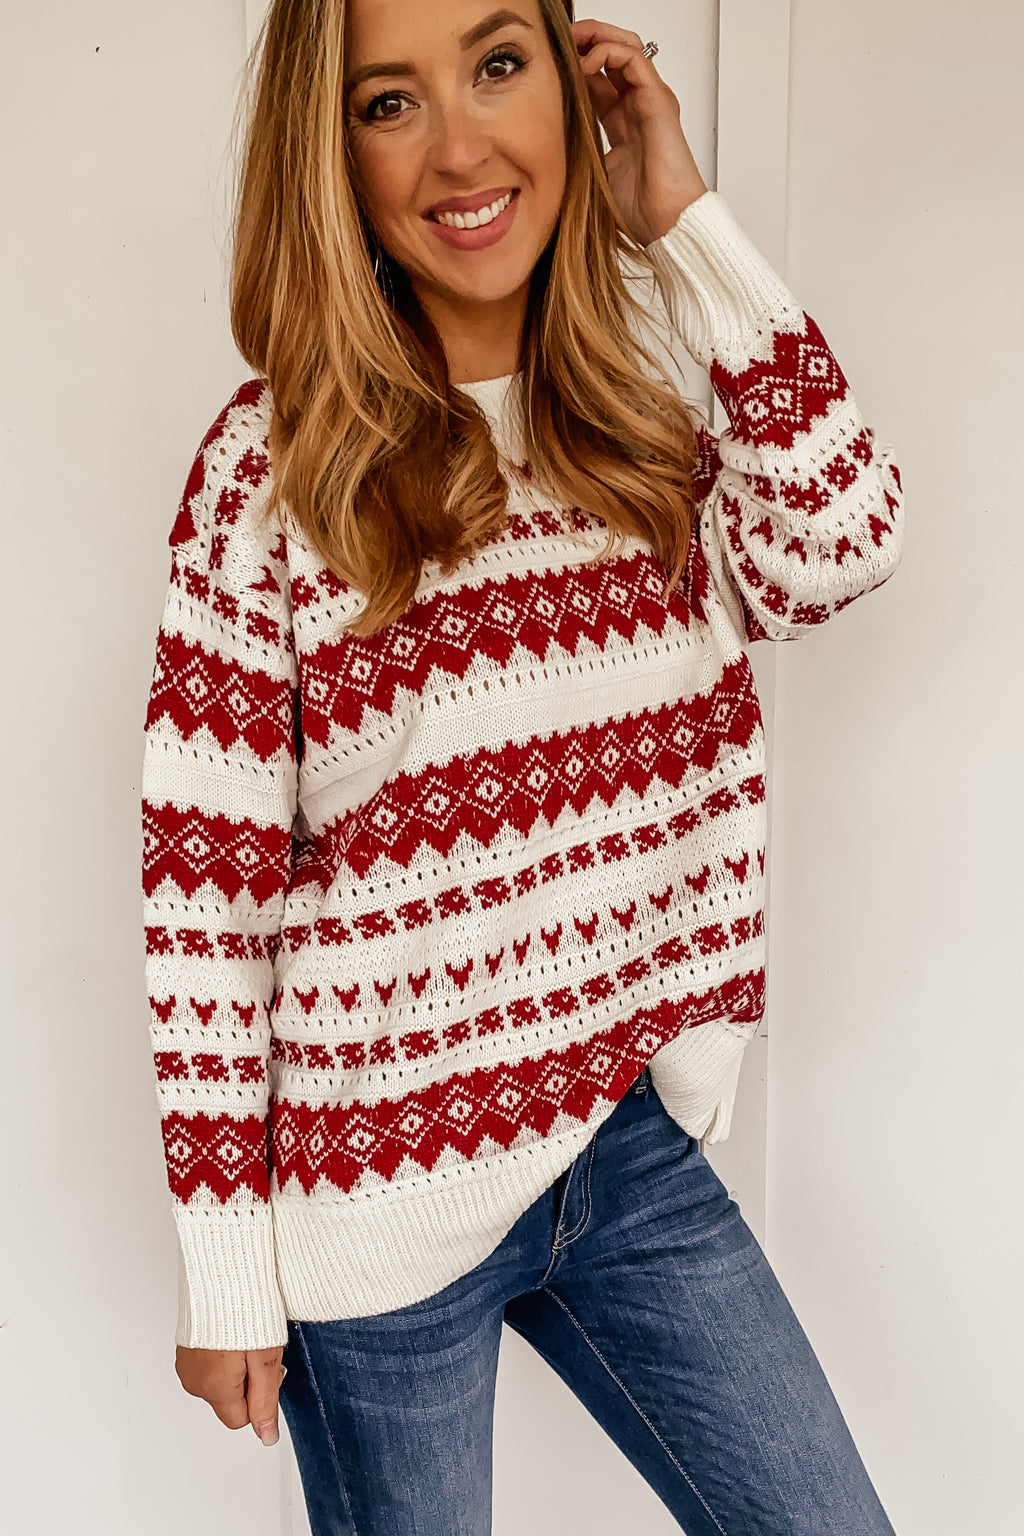 The Nordic Christmas Sweater